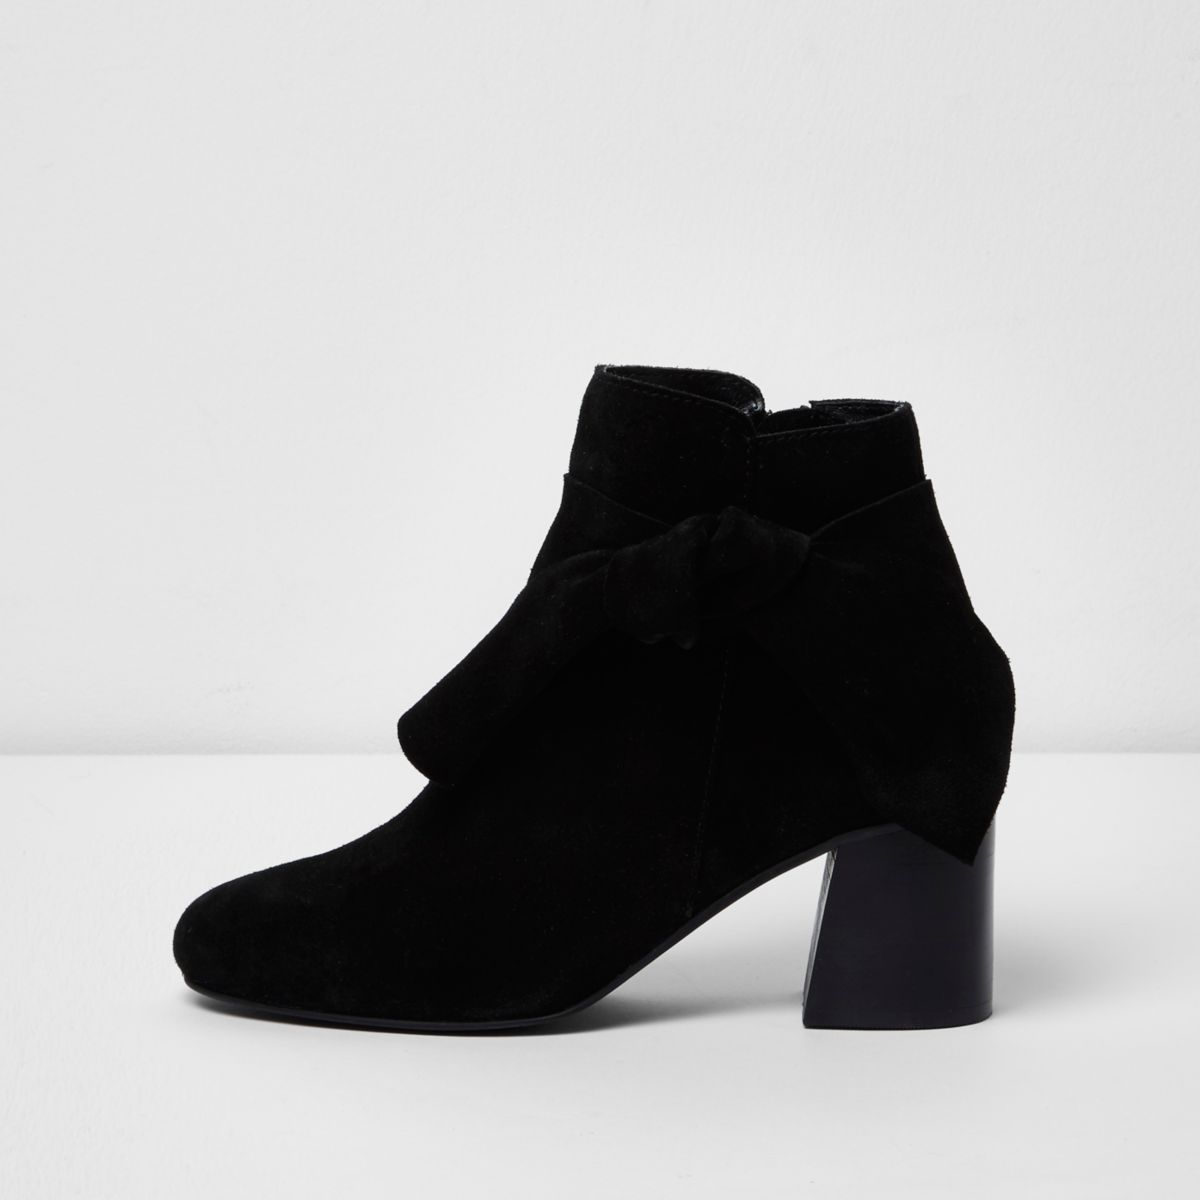 Black suede bow side ankle boots